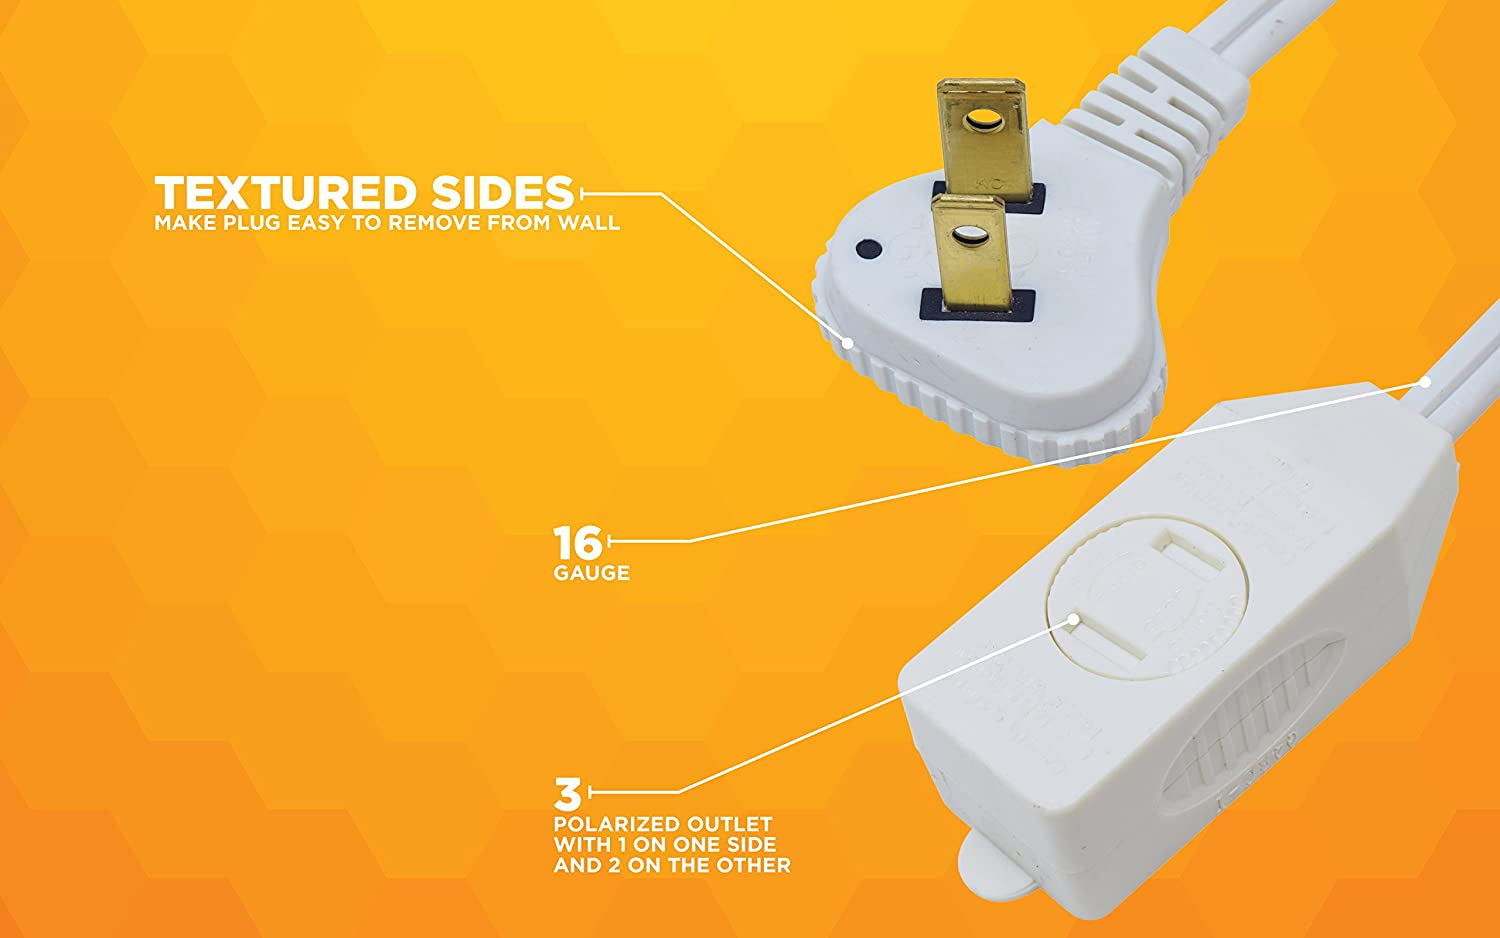 2-Wire 7-Foot White Coleman Cable SlimLine 2236 Flat Plug Extension Cord